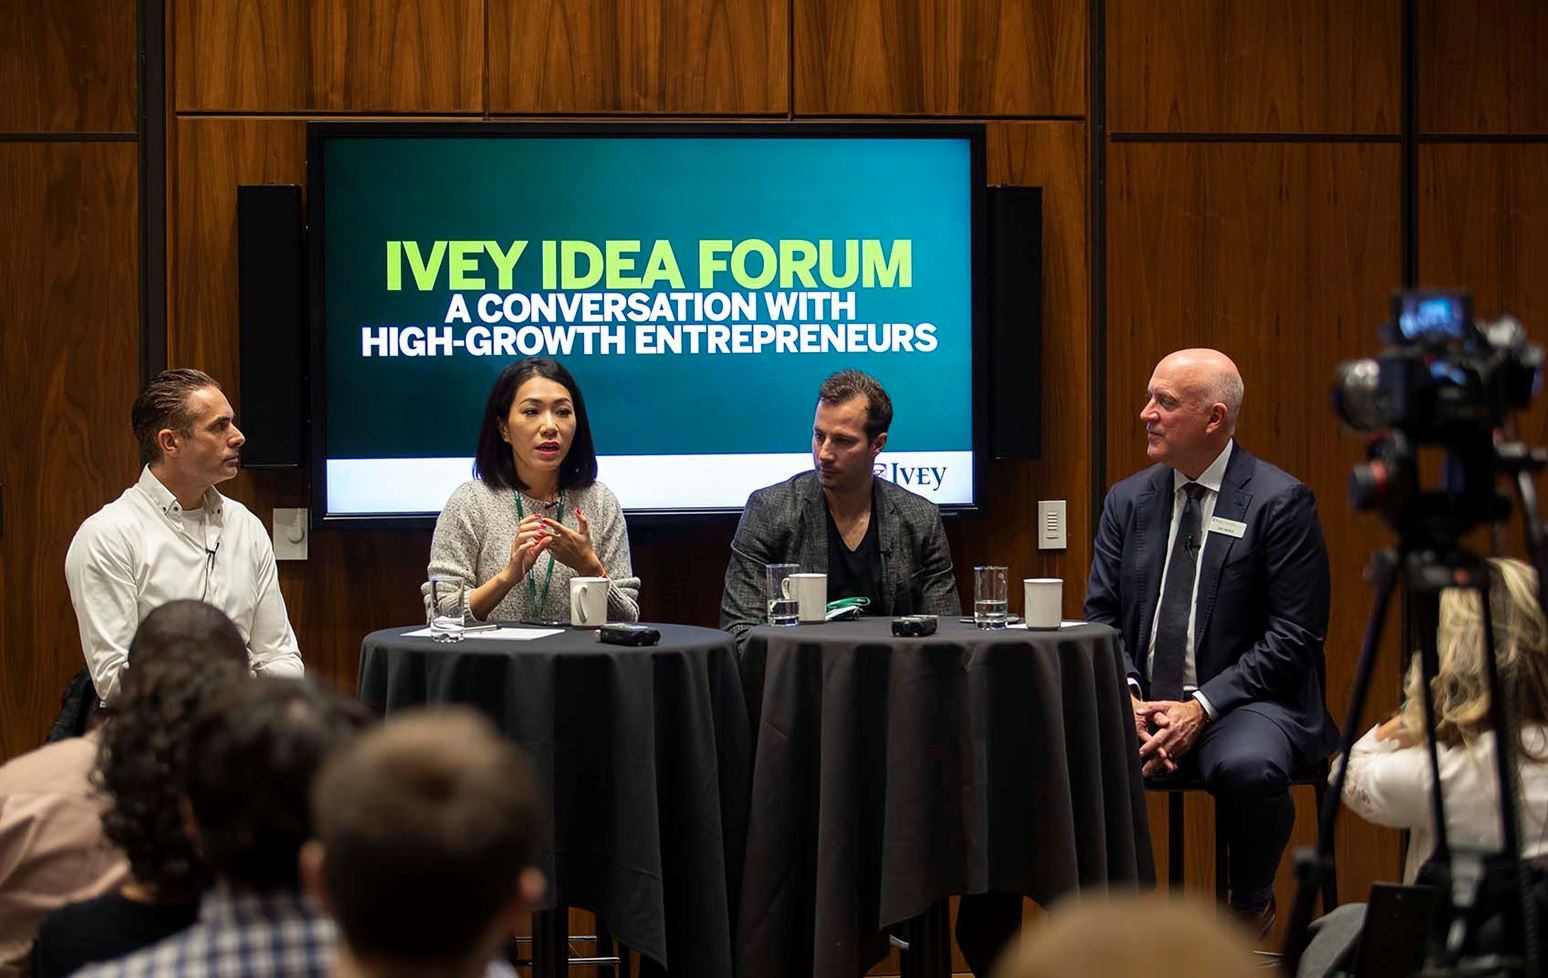 A conversation with high-growth entrepreneurs